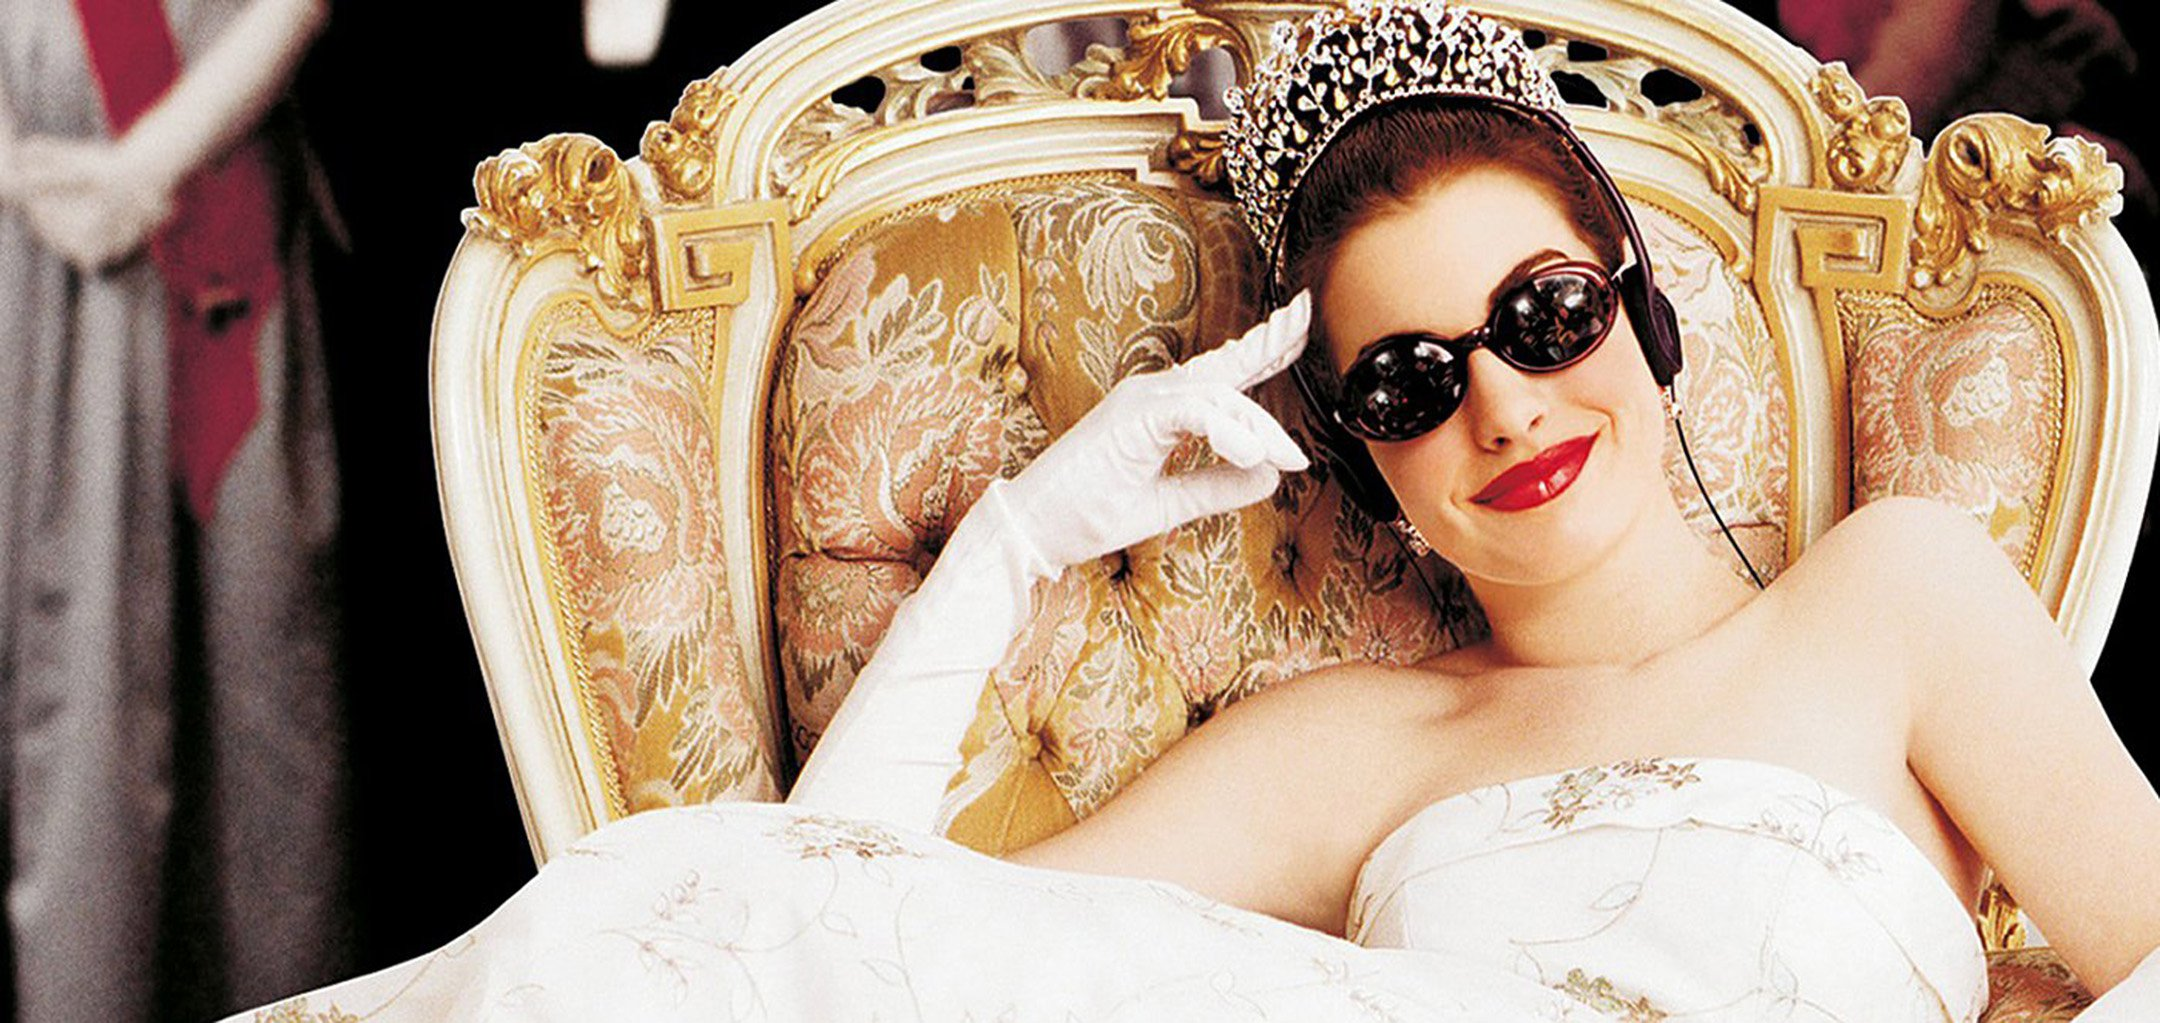 A promotional shot of Anne Hathaway in sunglasses in The Princess Diaries (2001)